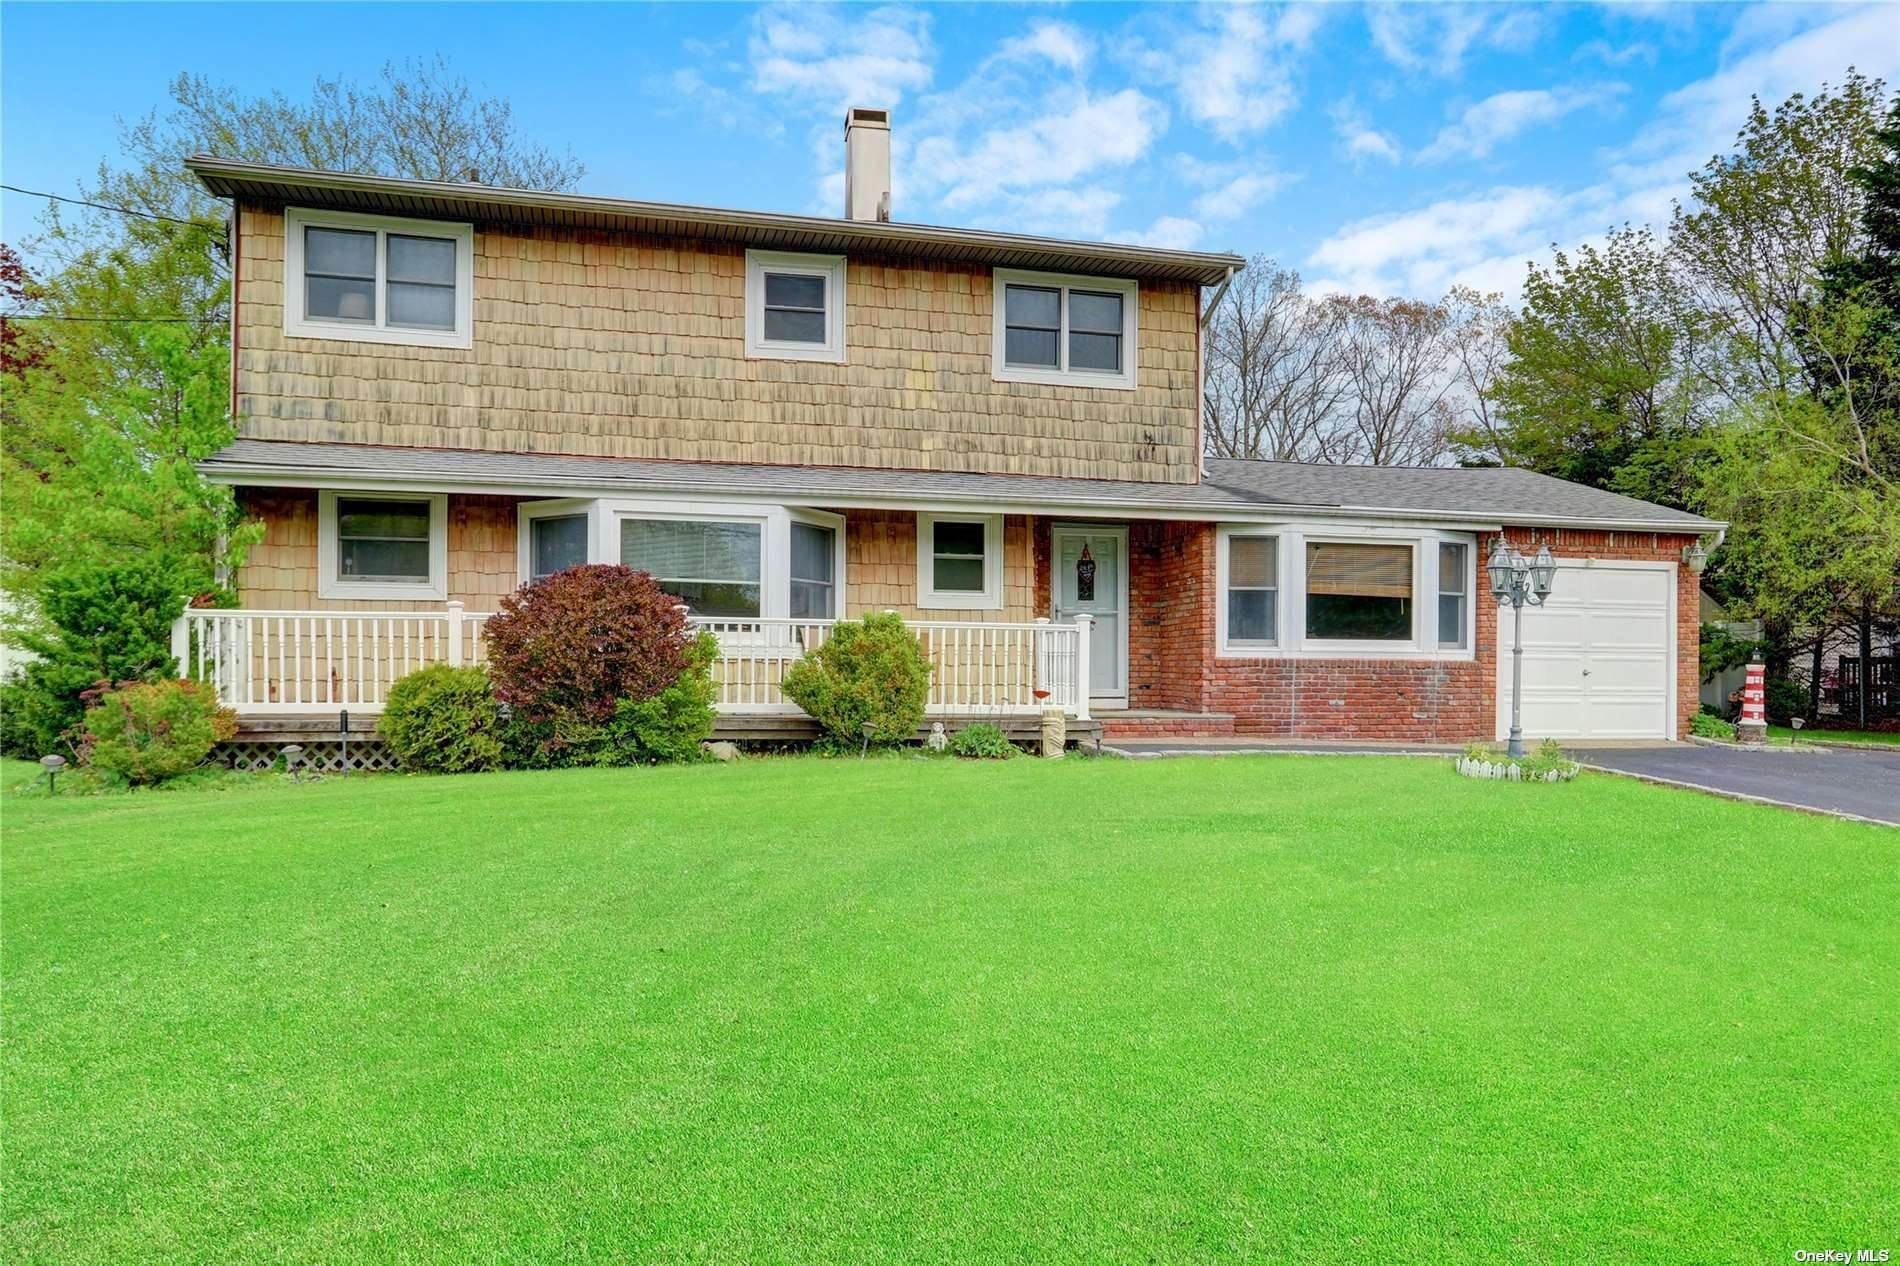 Residential for Sale at 977 Montauk Avenue Islip Terrace, New York 11752 United States